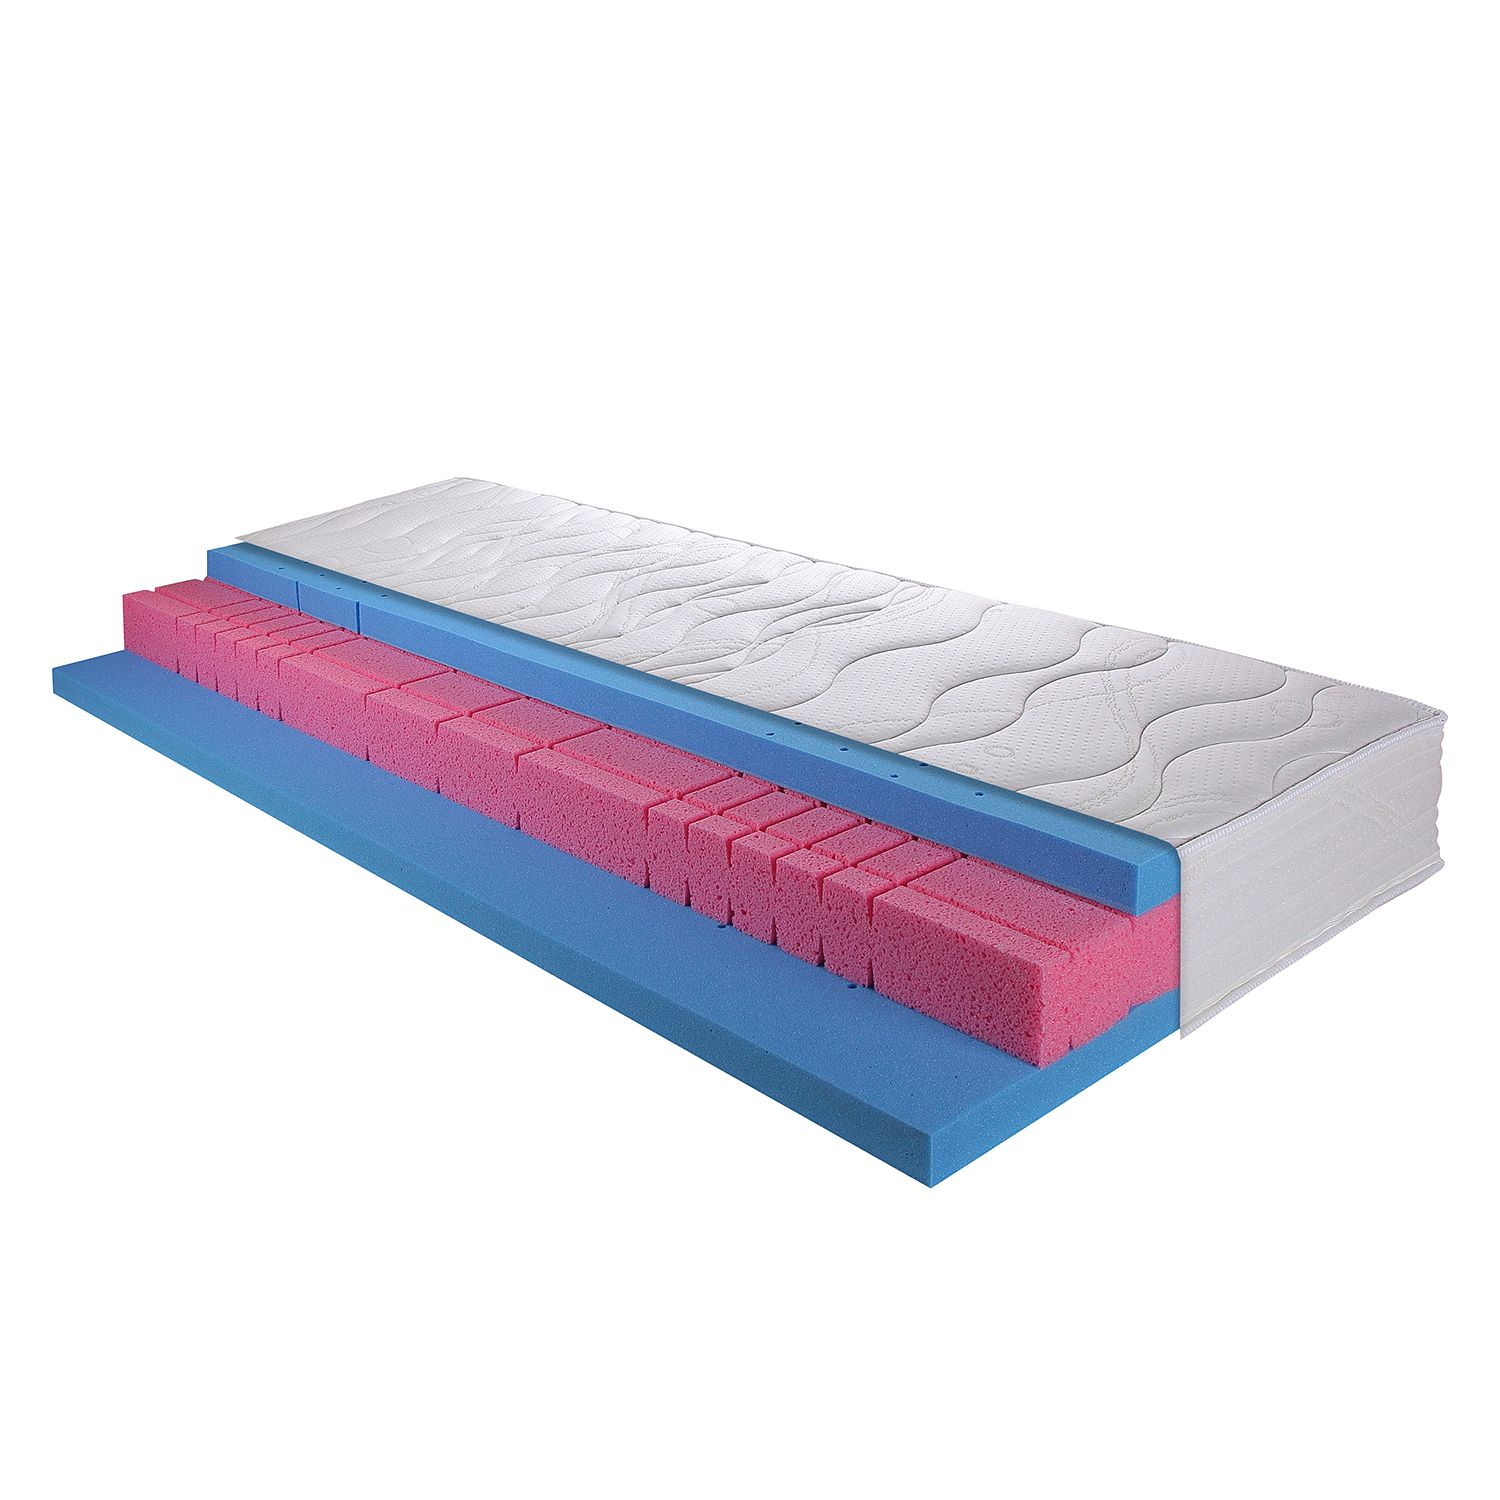 Matelas en mousse froide Ortho Air Gi - 90 x 200cm, Breckle